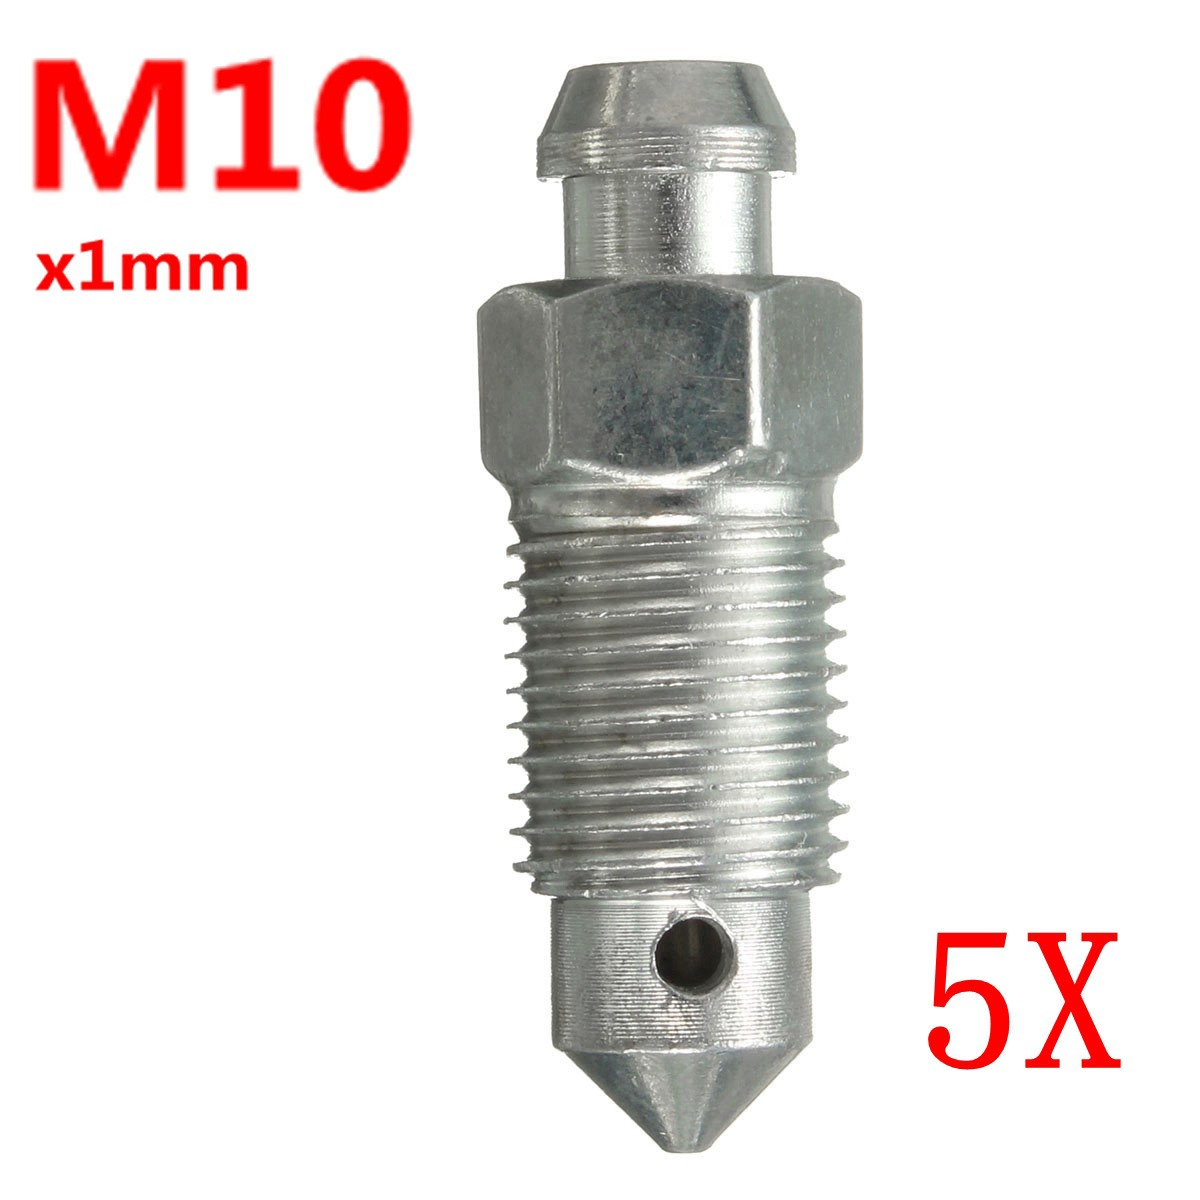 M10x1mm M8x1.25mm Motorcycle Braking Brake Caliper Bleed Screw Nipple with Dust Cap(China)